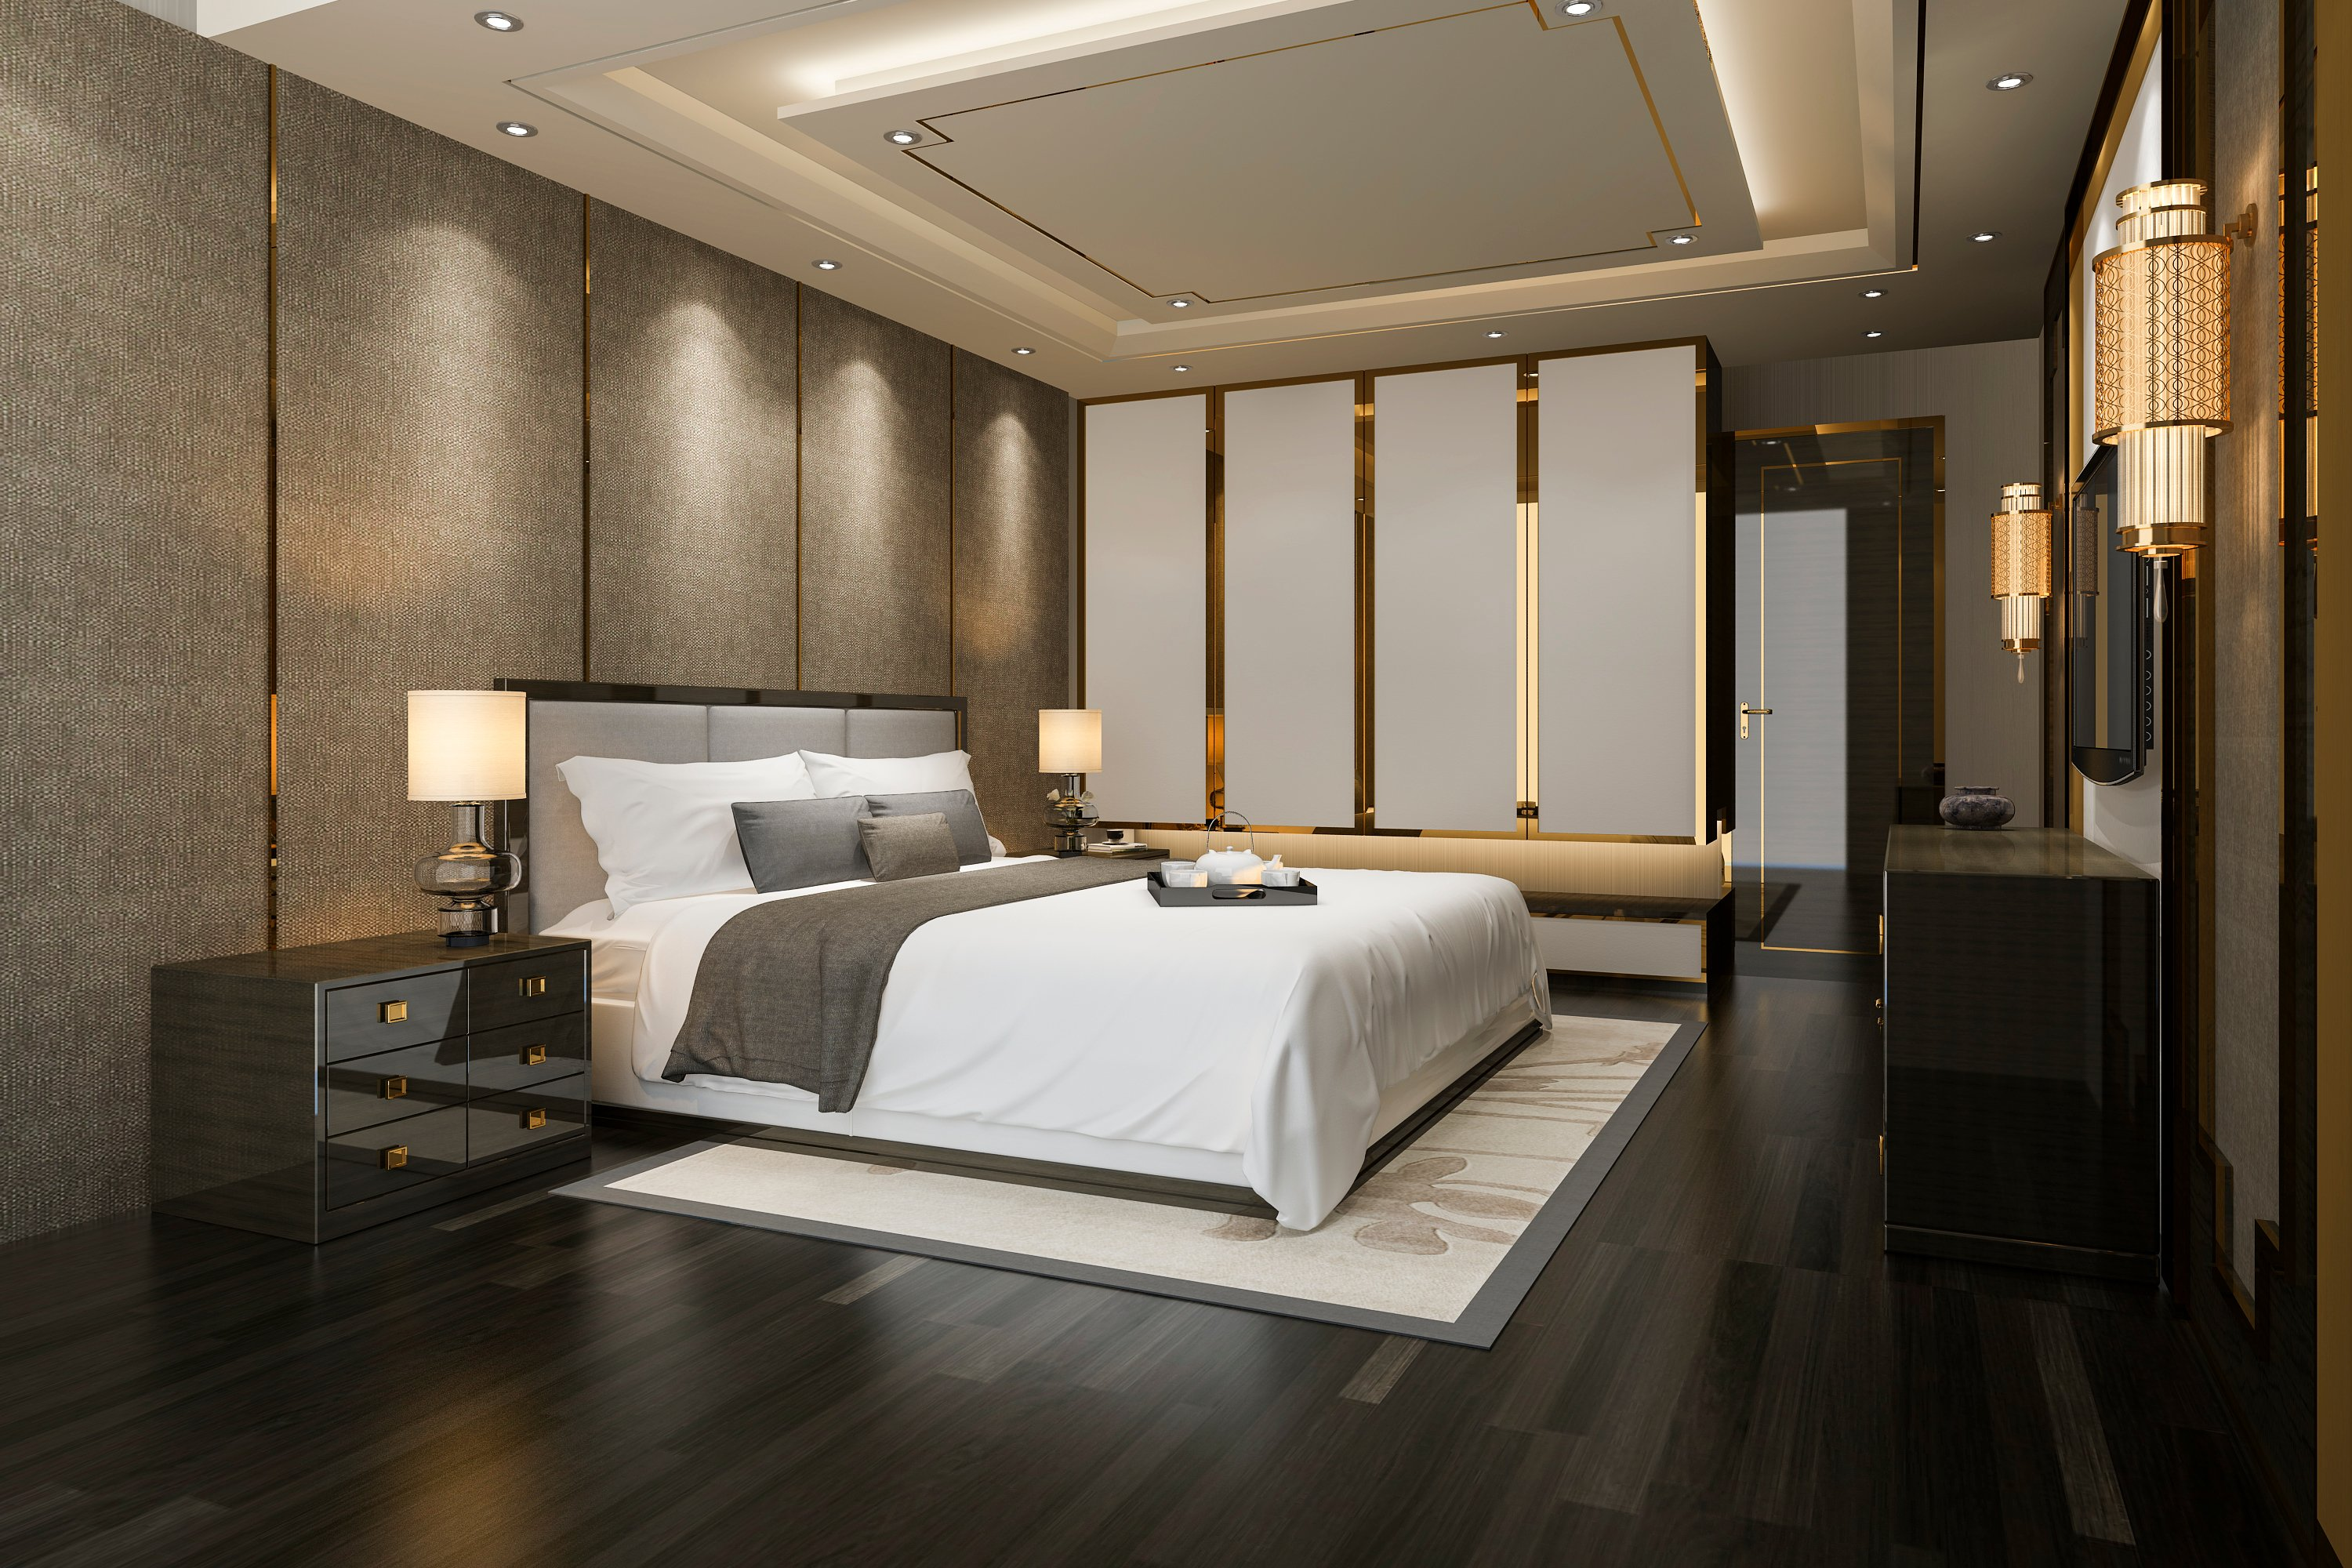 2020 False Ceiling Designs For Bedroom - HomeLane Blog